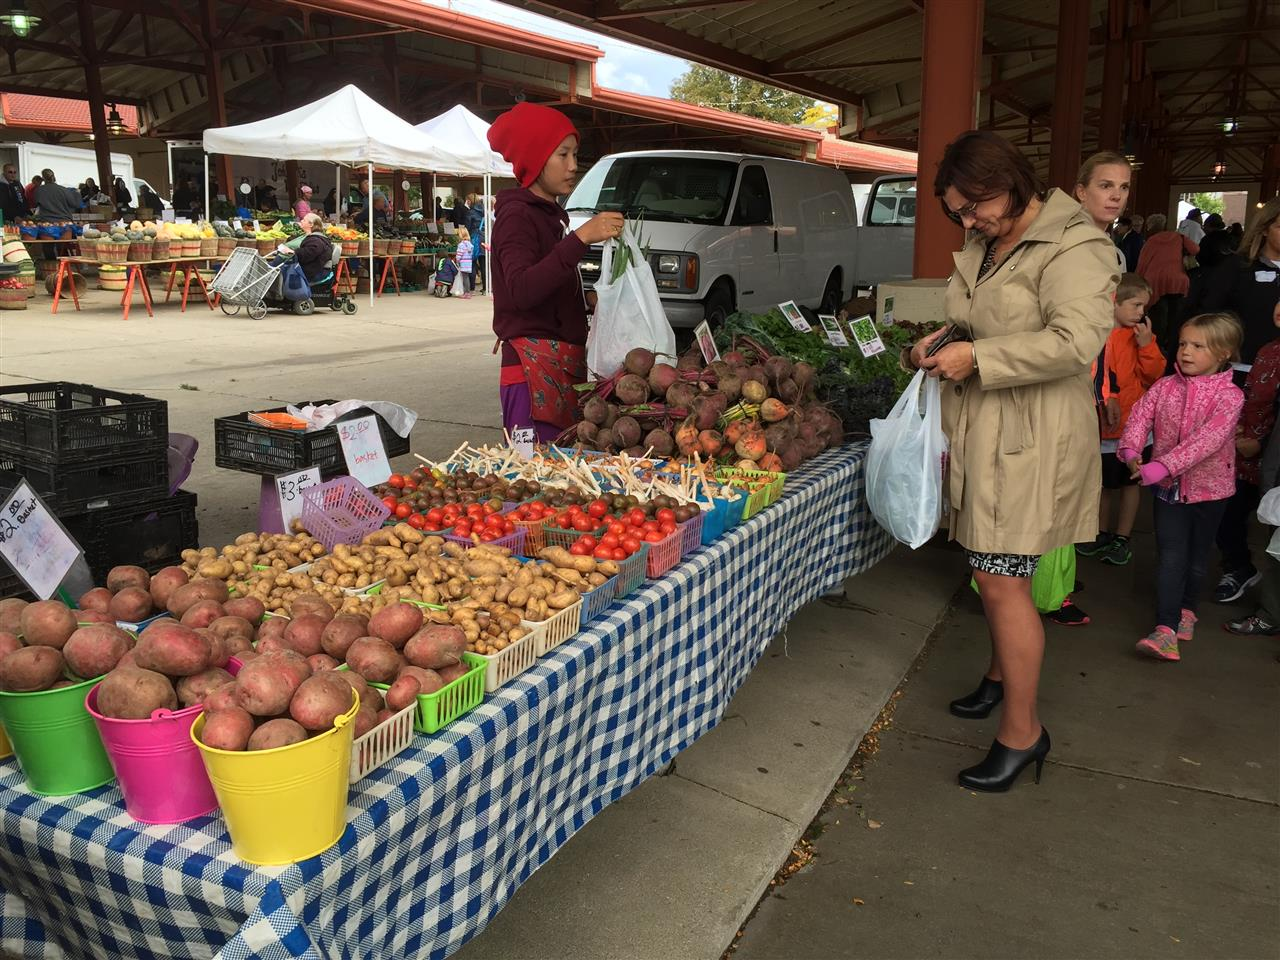 West Allis Farmer's Market has been going for over 100 years in West Allis, WI